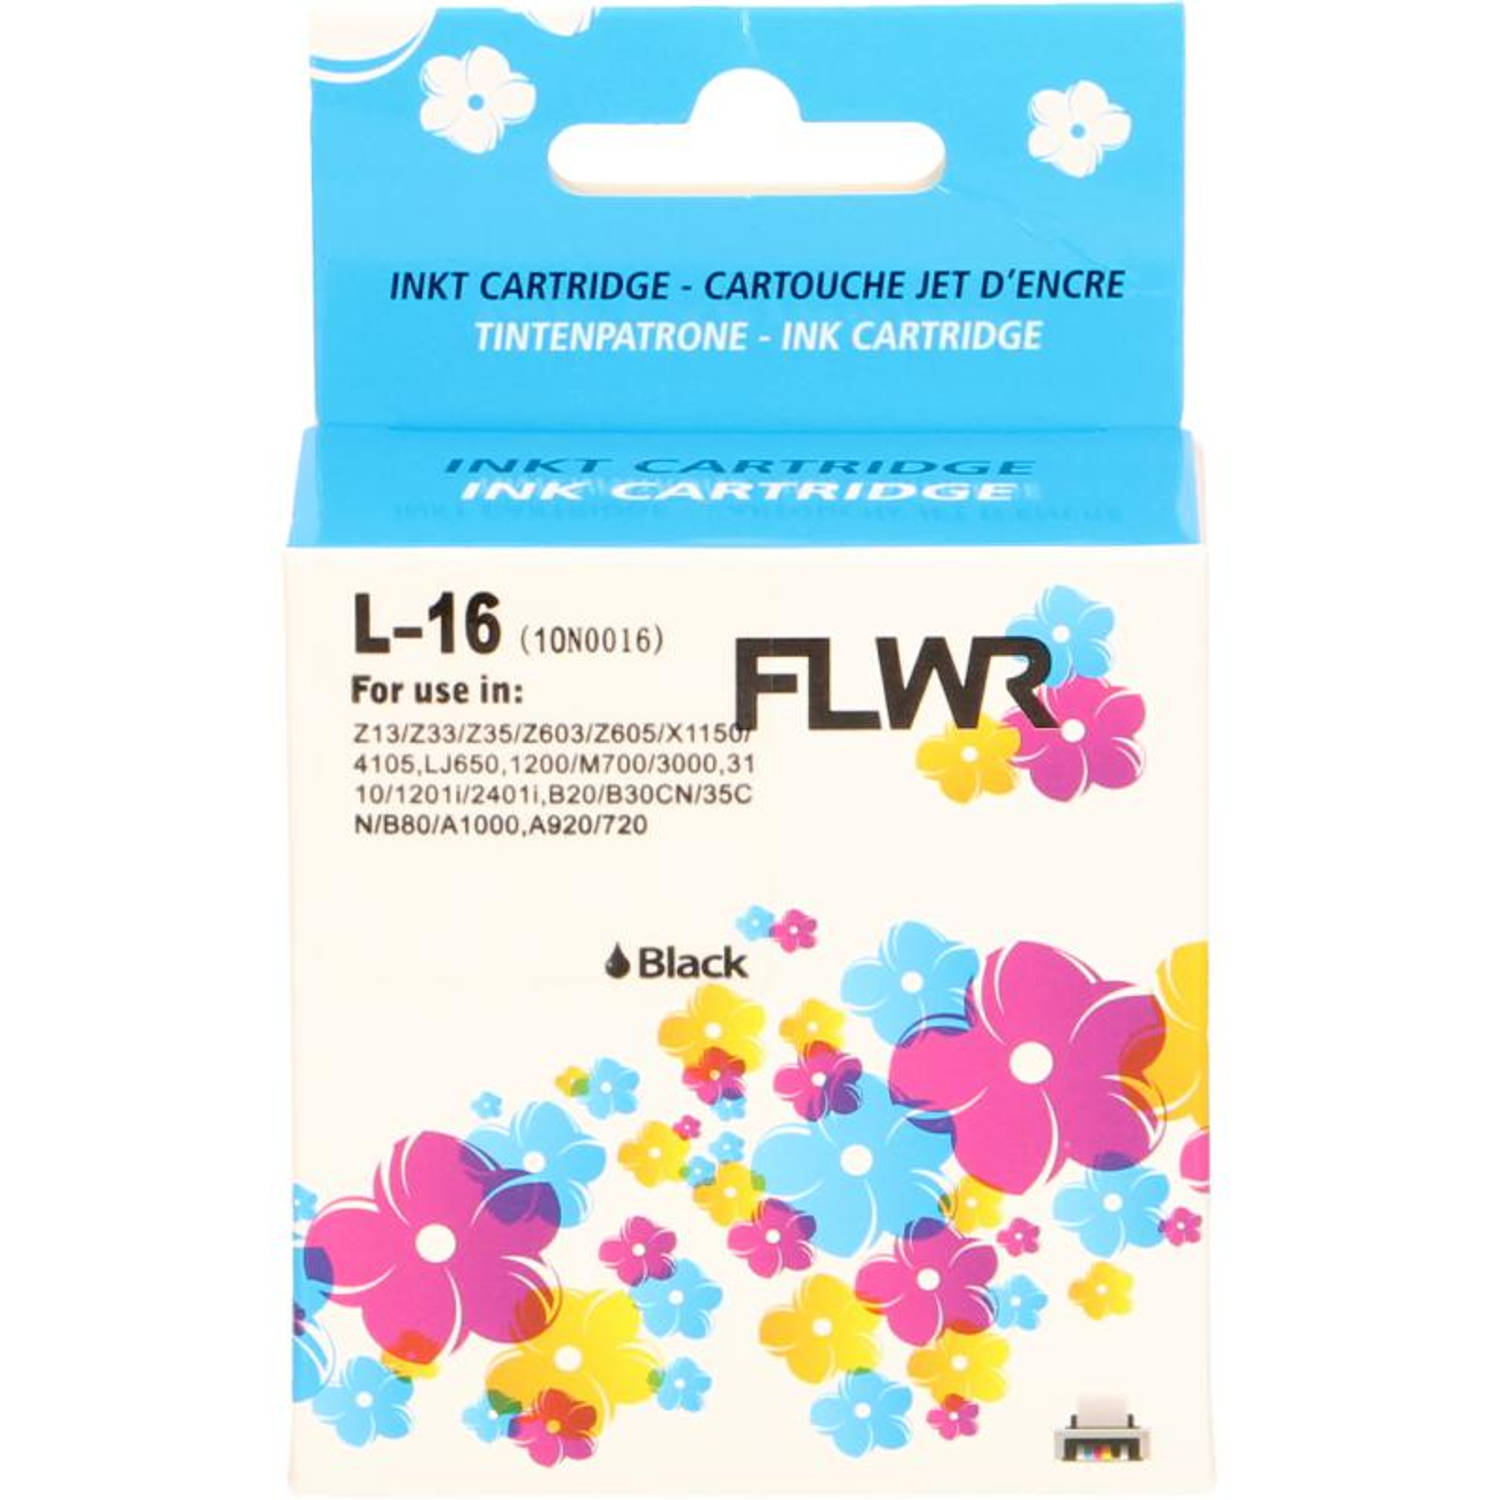 FLWR Lexmark 16 zwart Cartridge